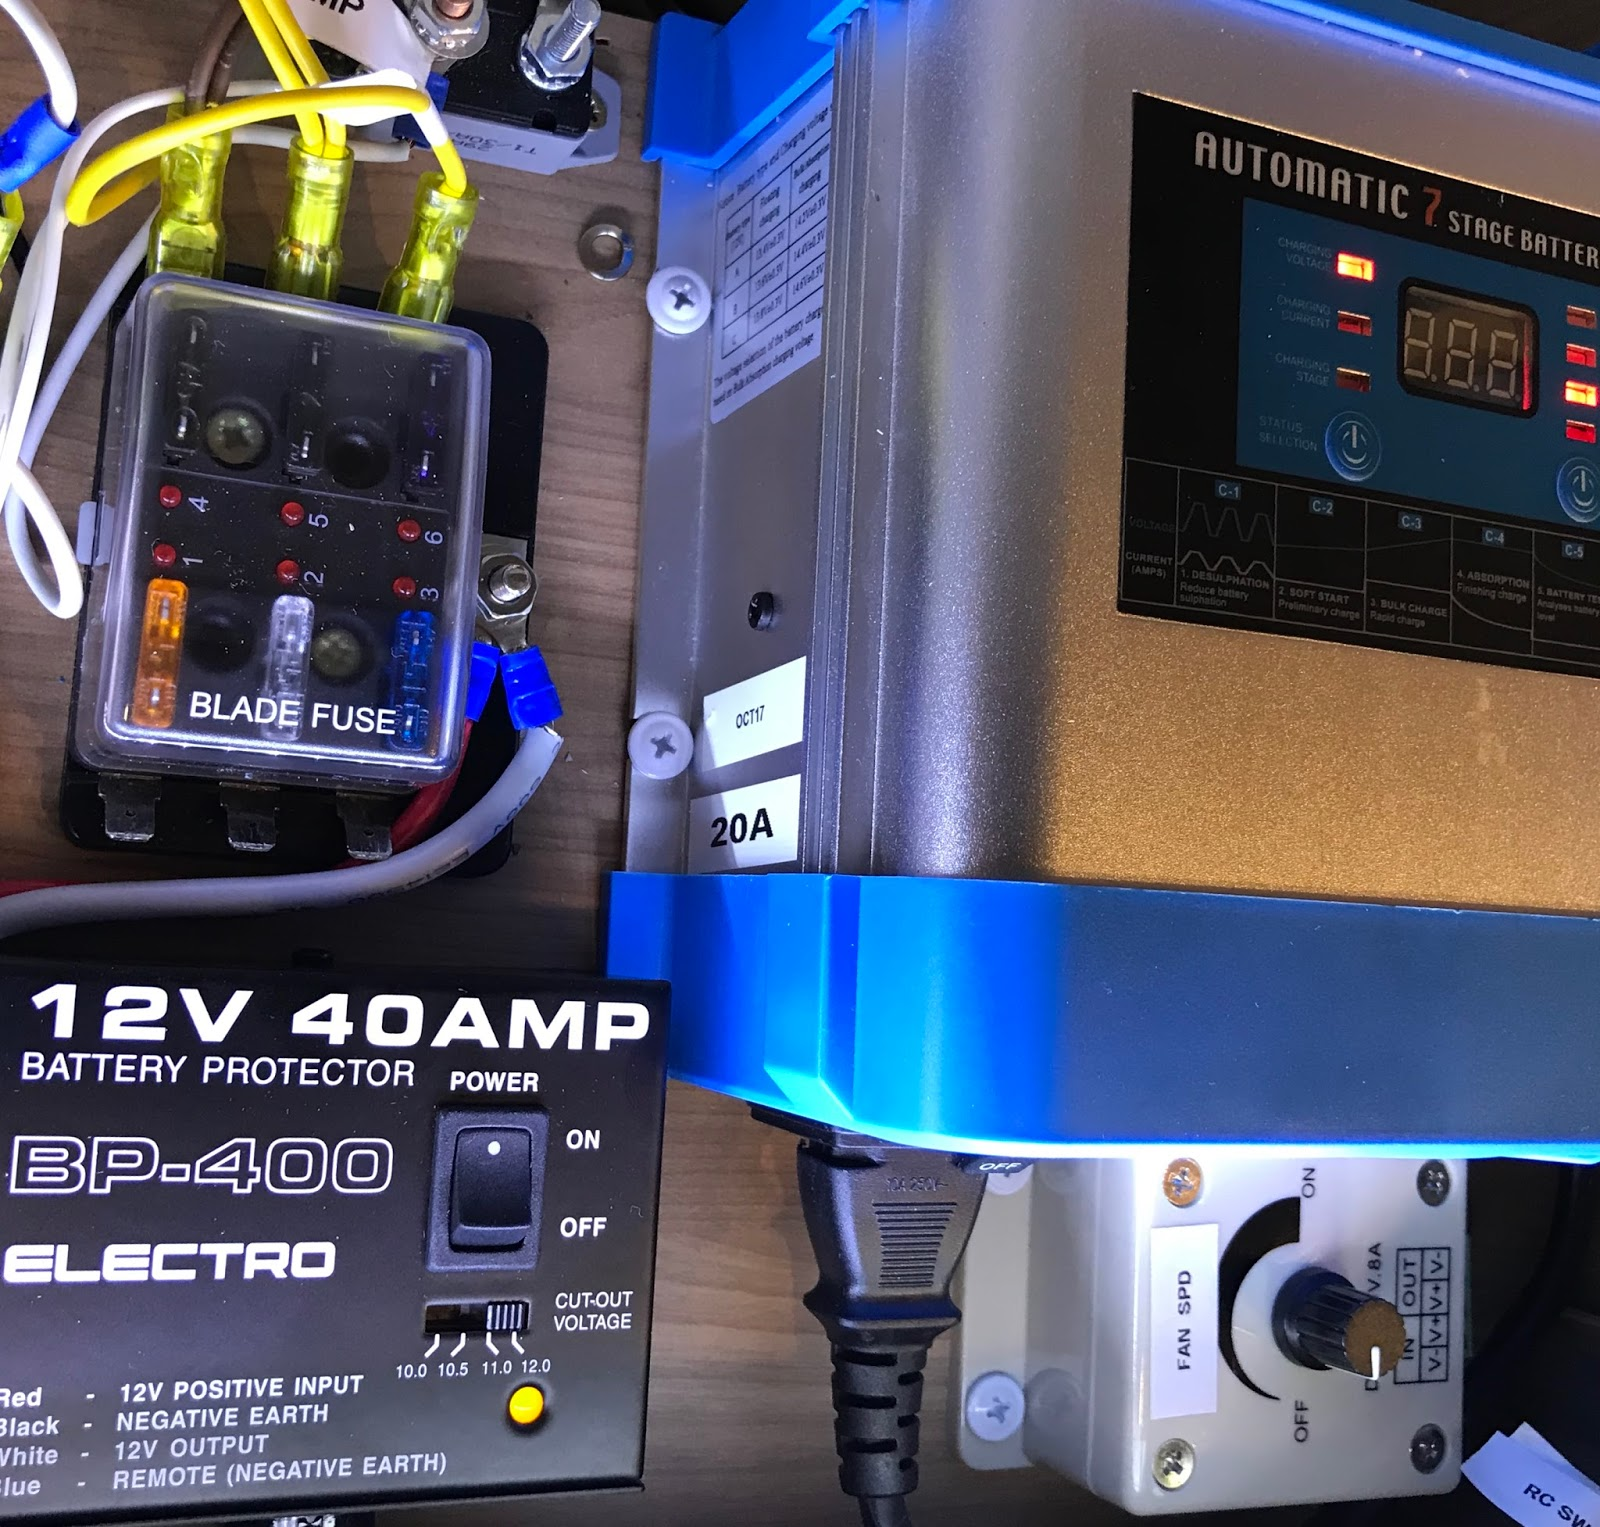 Our Jayco Journey Caravan's Electrical System - Overview